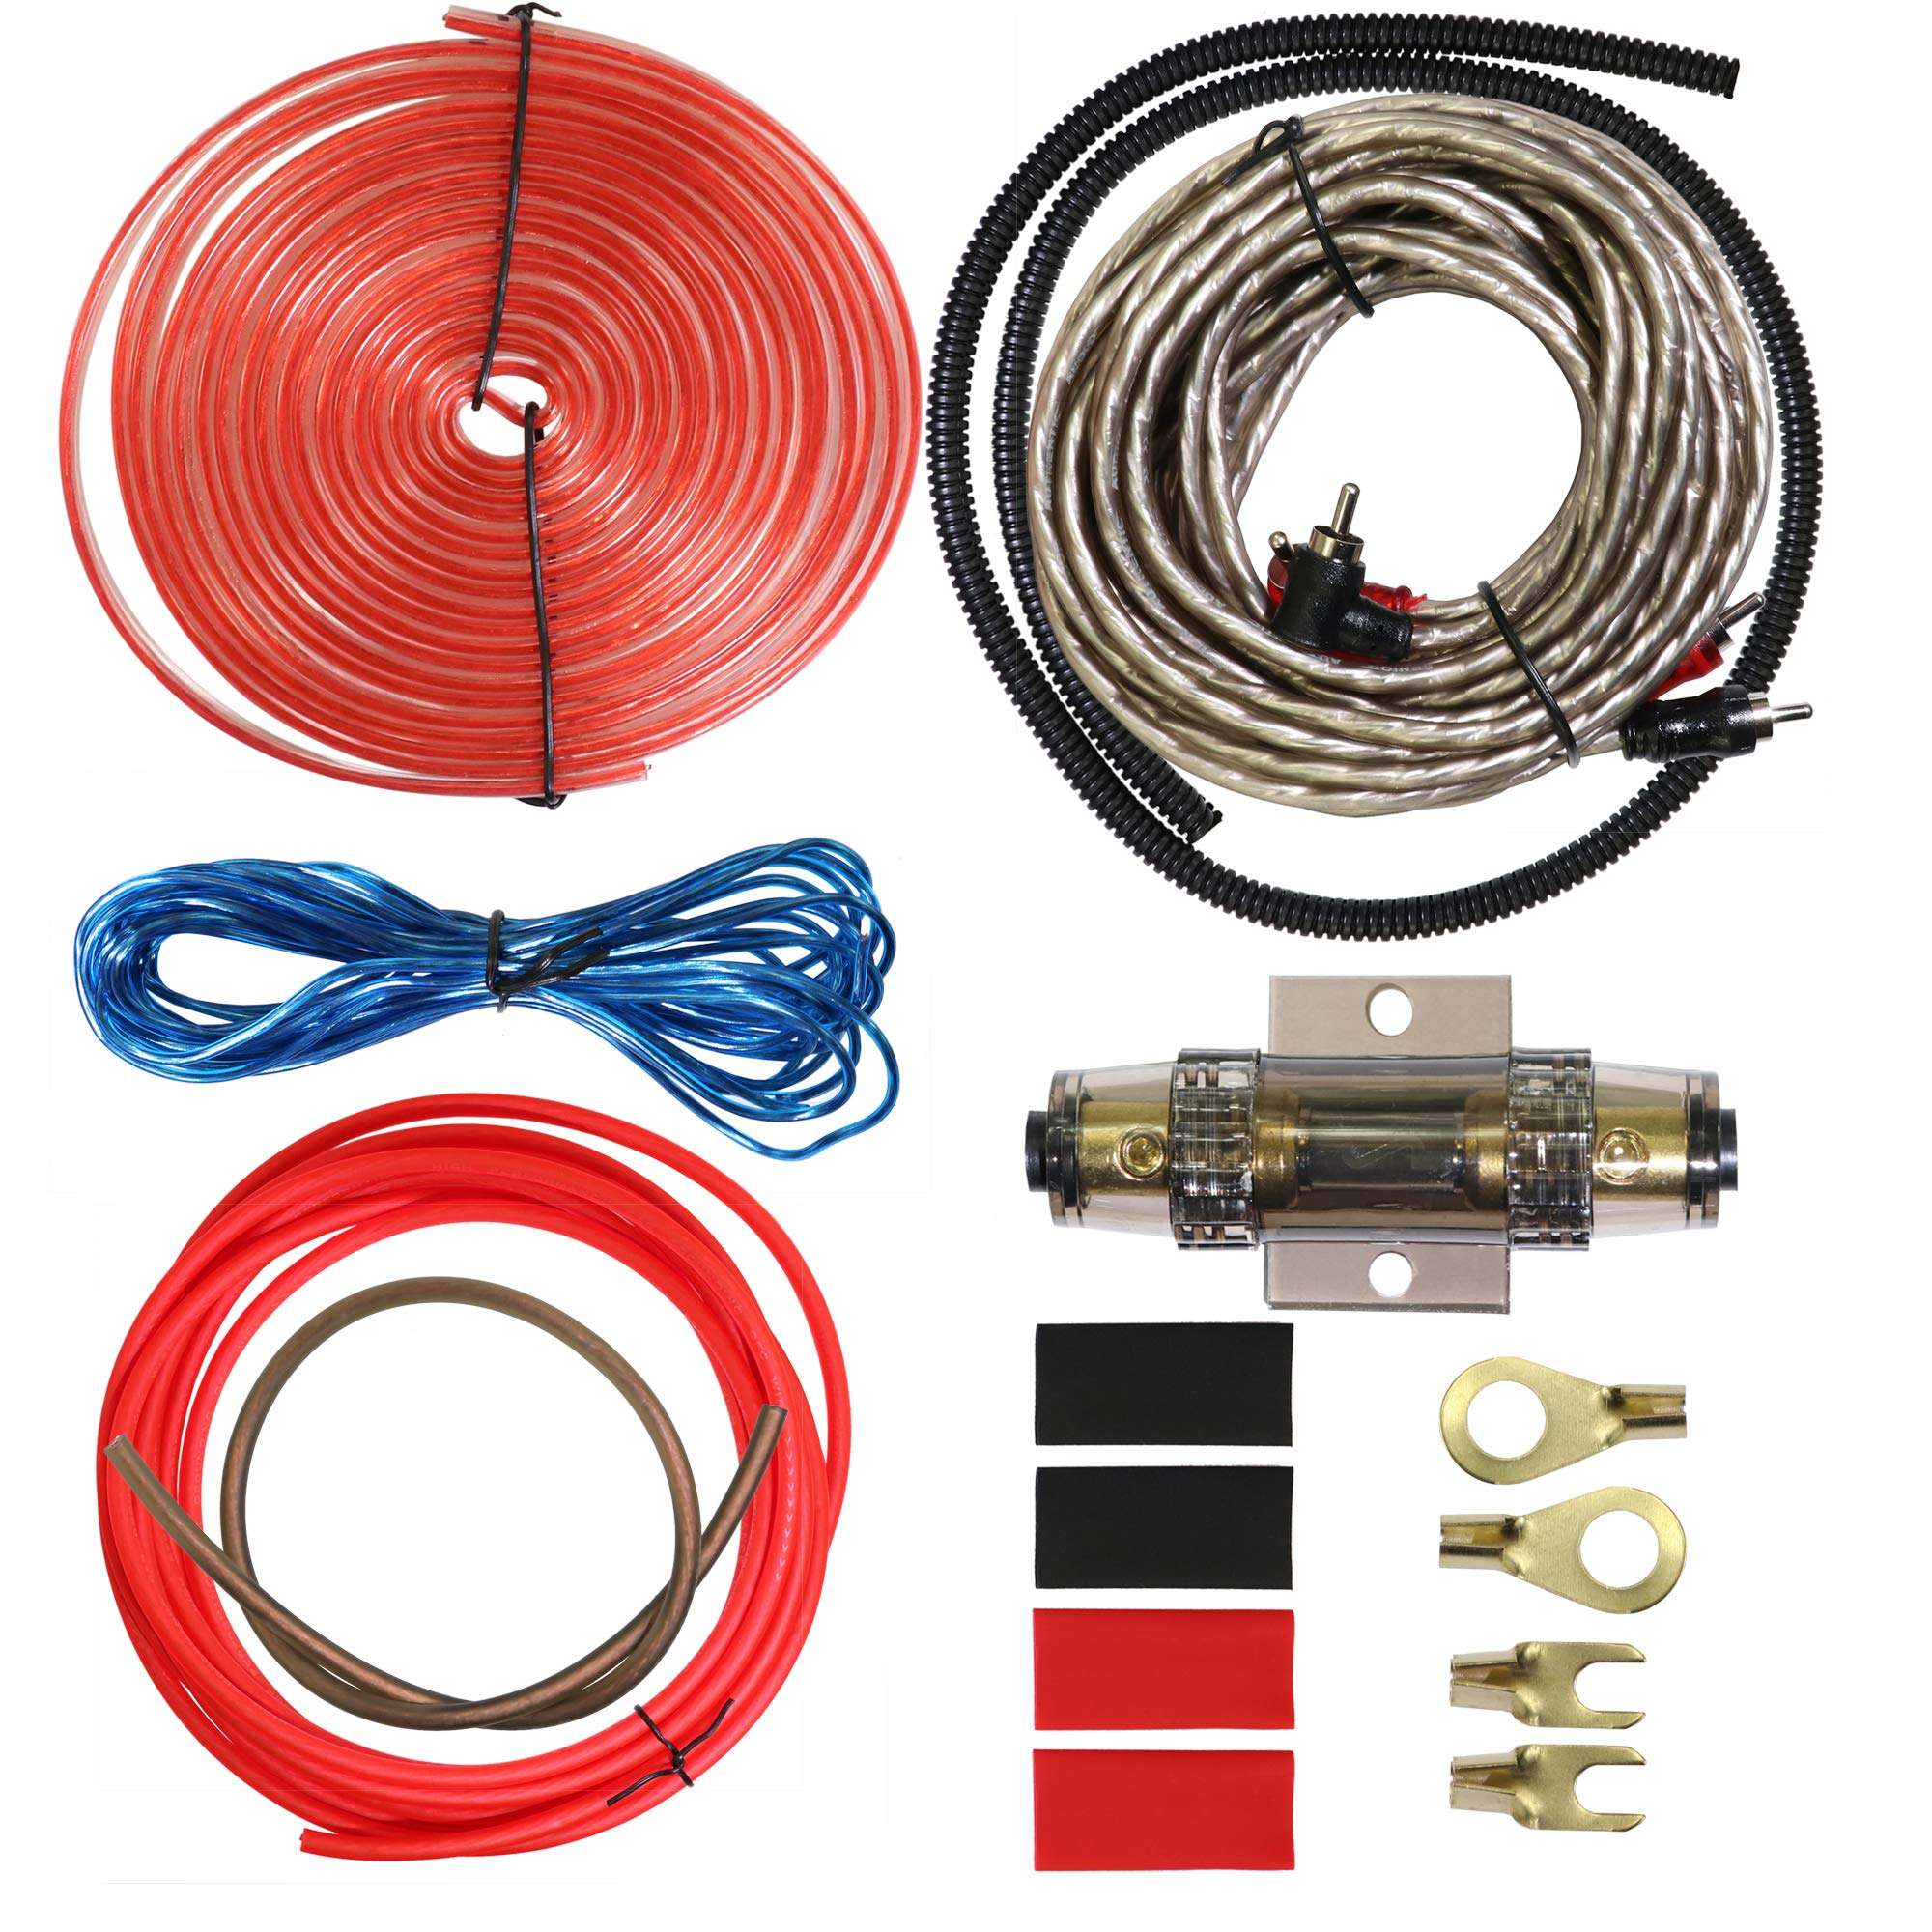 Welugnal Car Amplifier Wiring Kit - 8 Gauge Complete Amp Kit Amplifier Installation Wiring Wire Kit,Includes Power, Ground, Remote Cable, RCA Cable,Speaker Wire, Split Loom Tubing and Fuse Holder